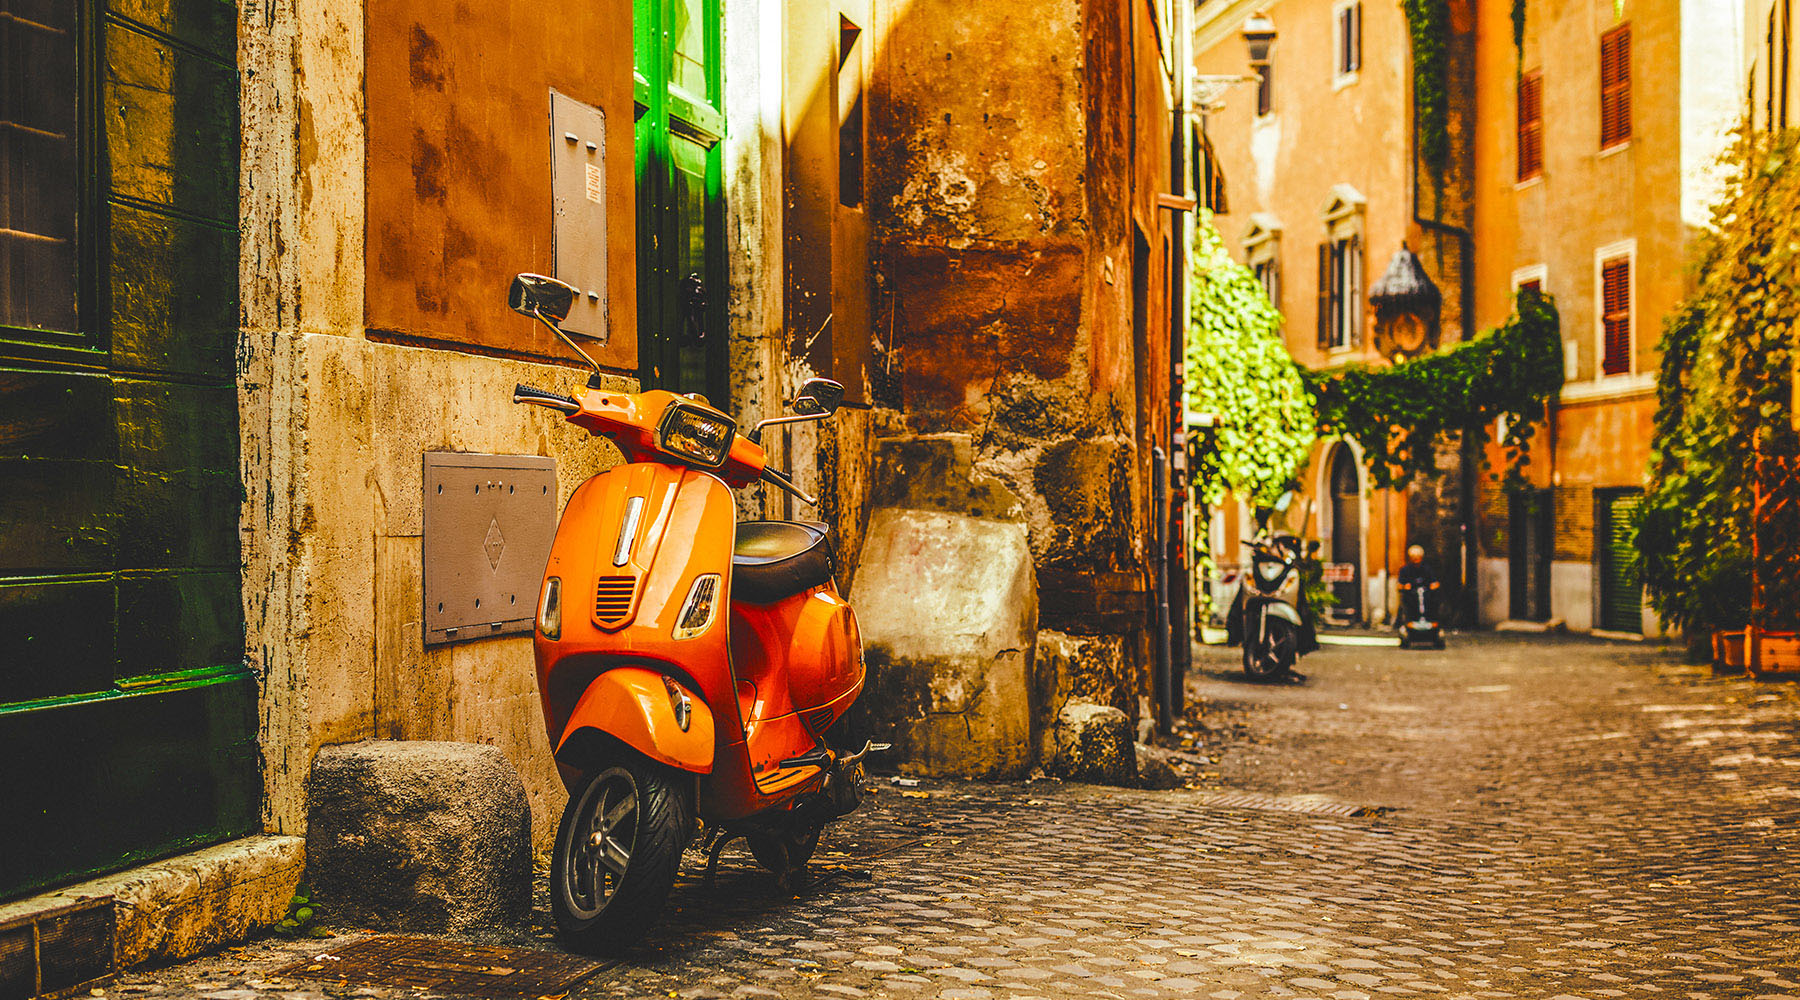 7-Night Italy And Spain Voyage & 3-Night Pre Rome Stay